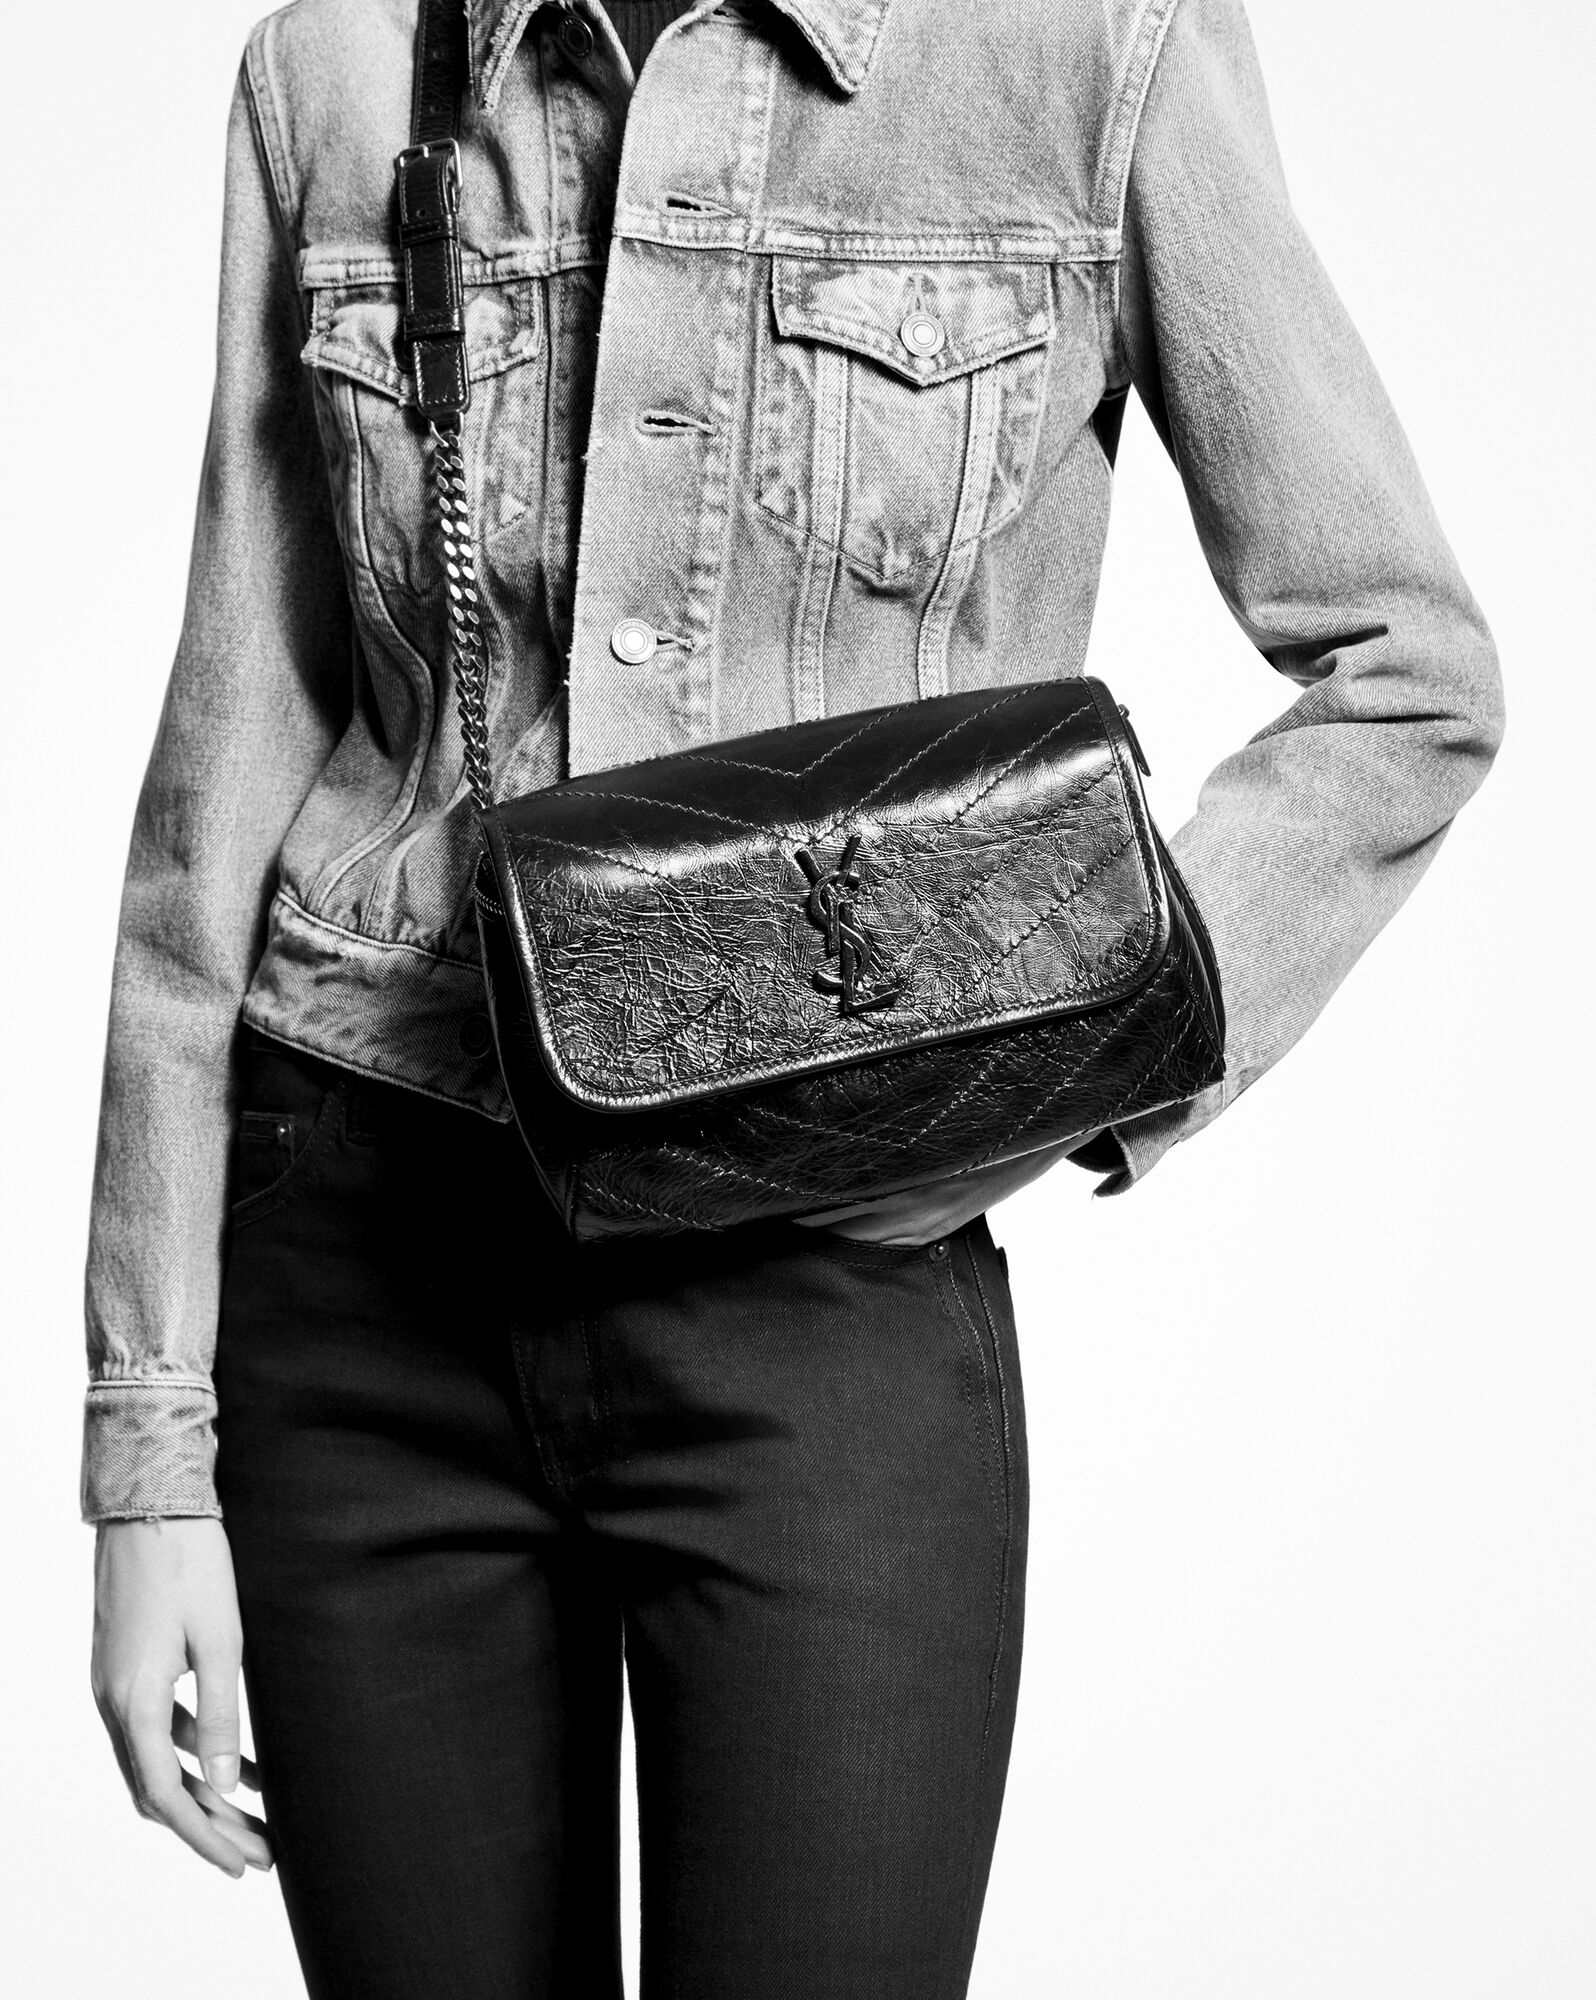 Saint Laurent: Up To 50% Off Private Sale